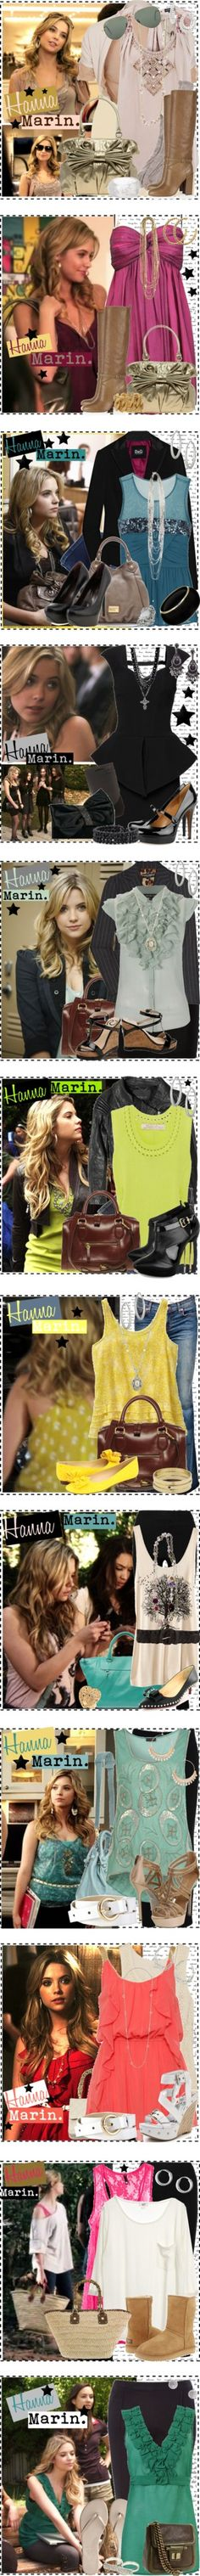 """Hanna Marin."" by silver-screen-style ❤ liked on Polyvore"